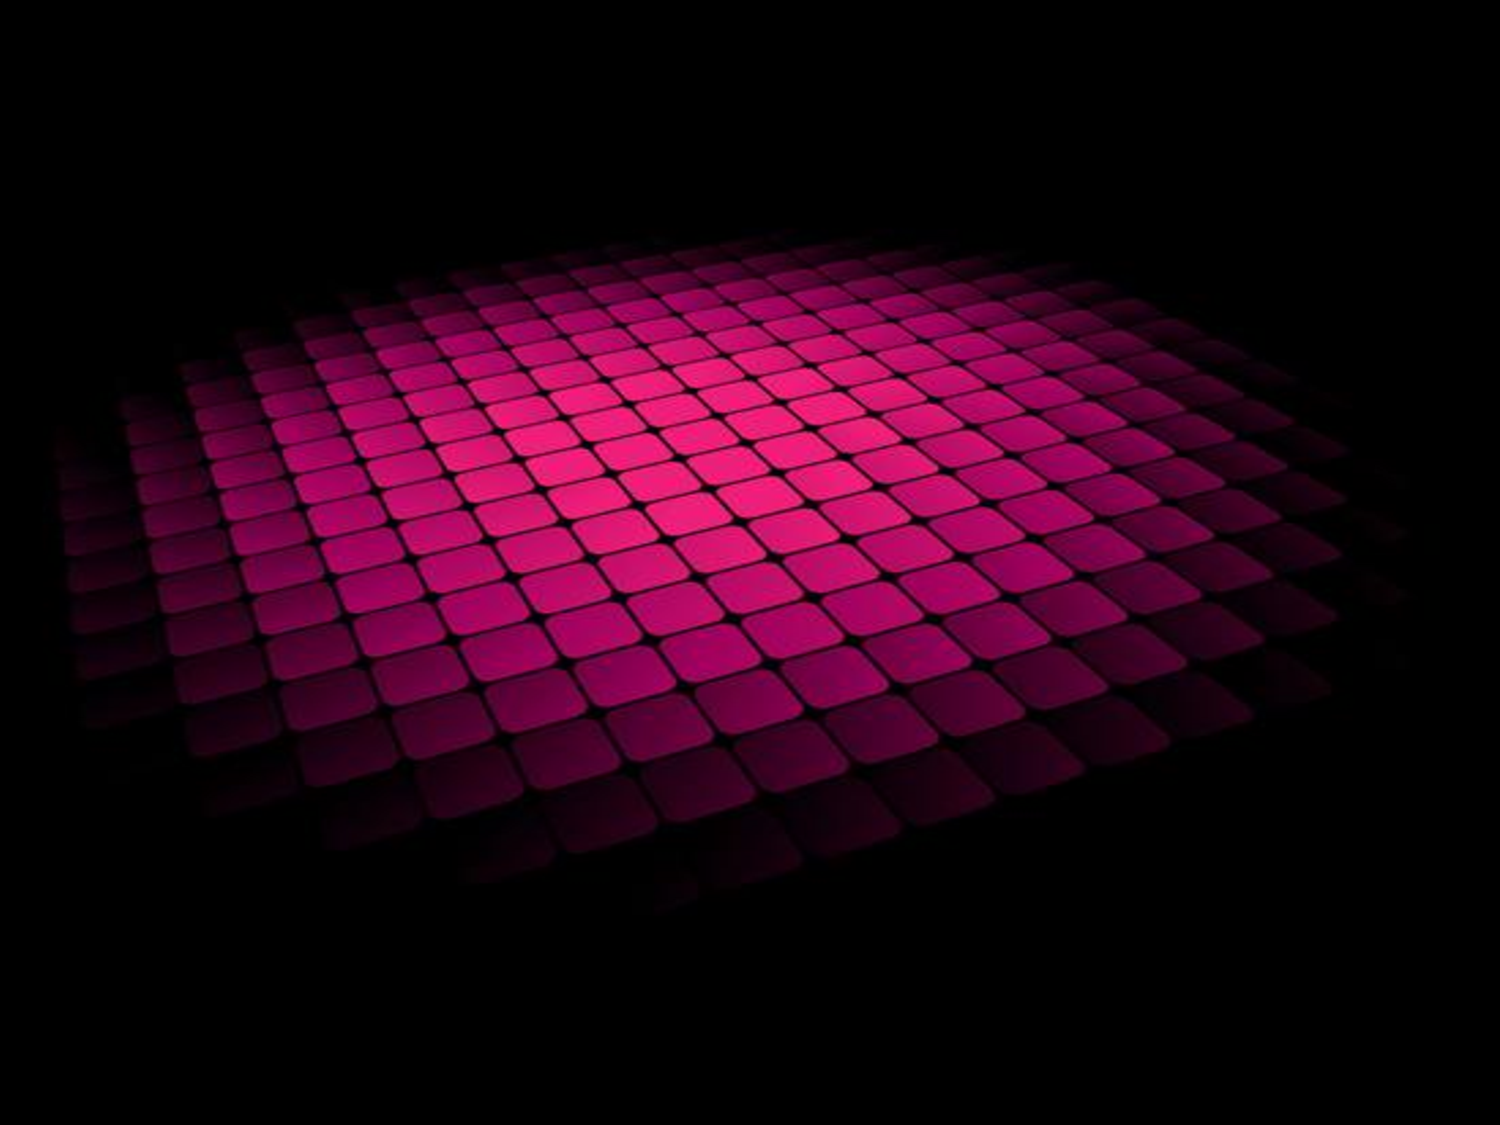 black pink grid floor background Black Background and some PPT 1500x1125